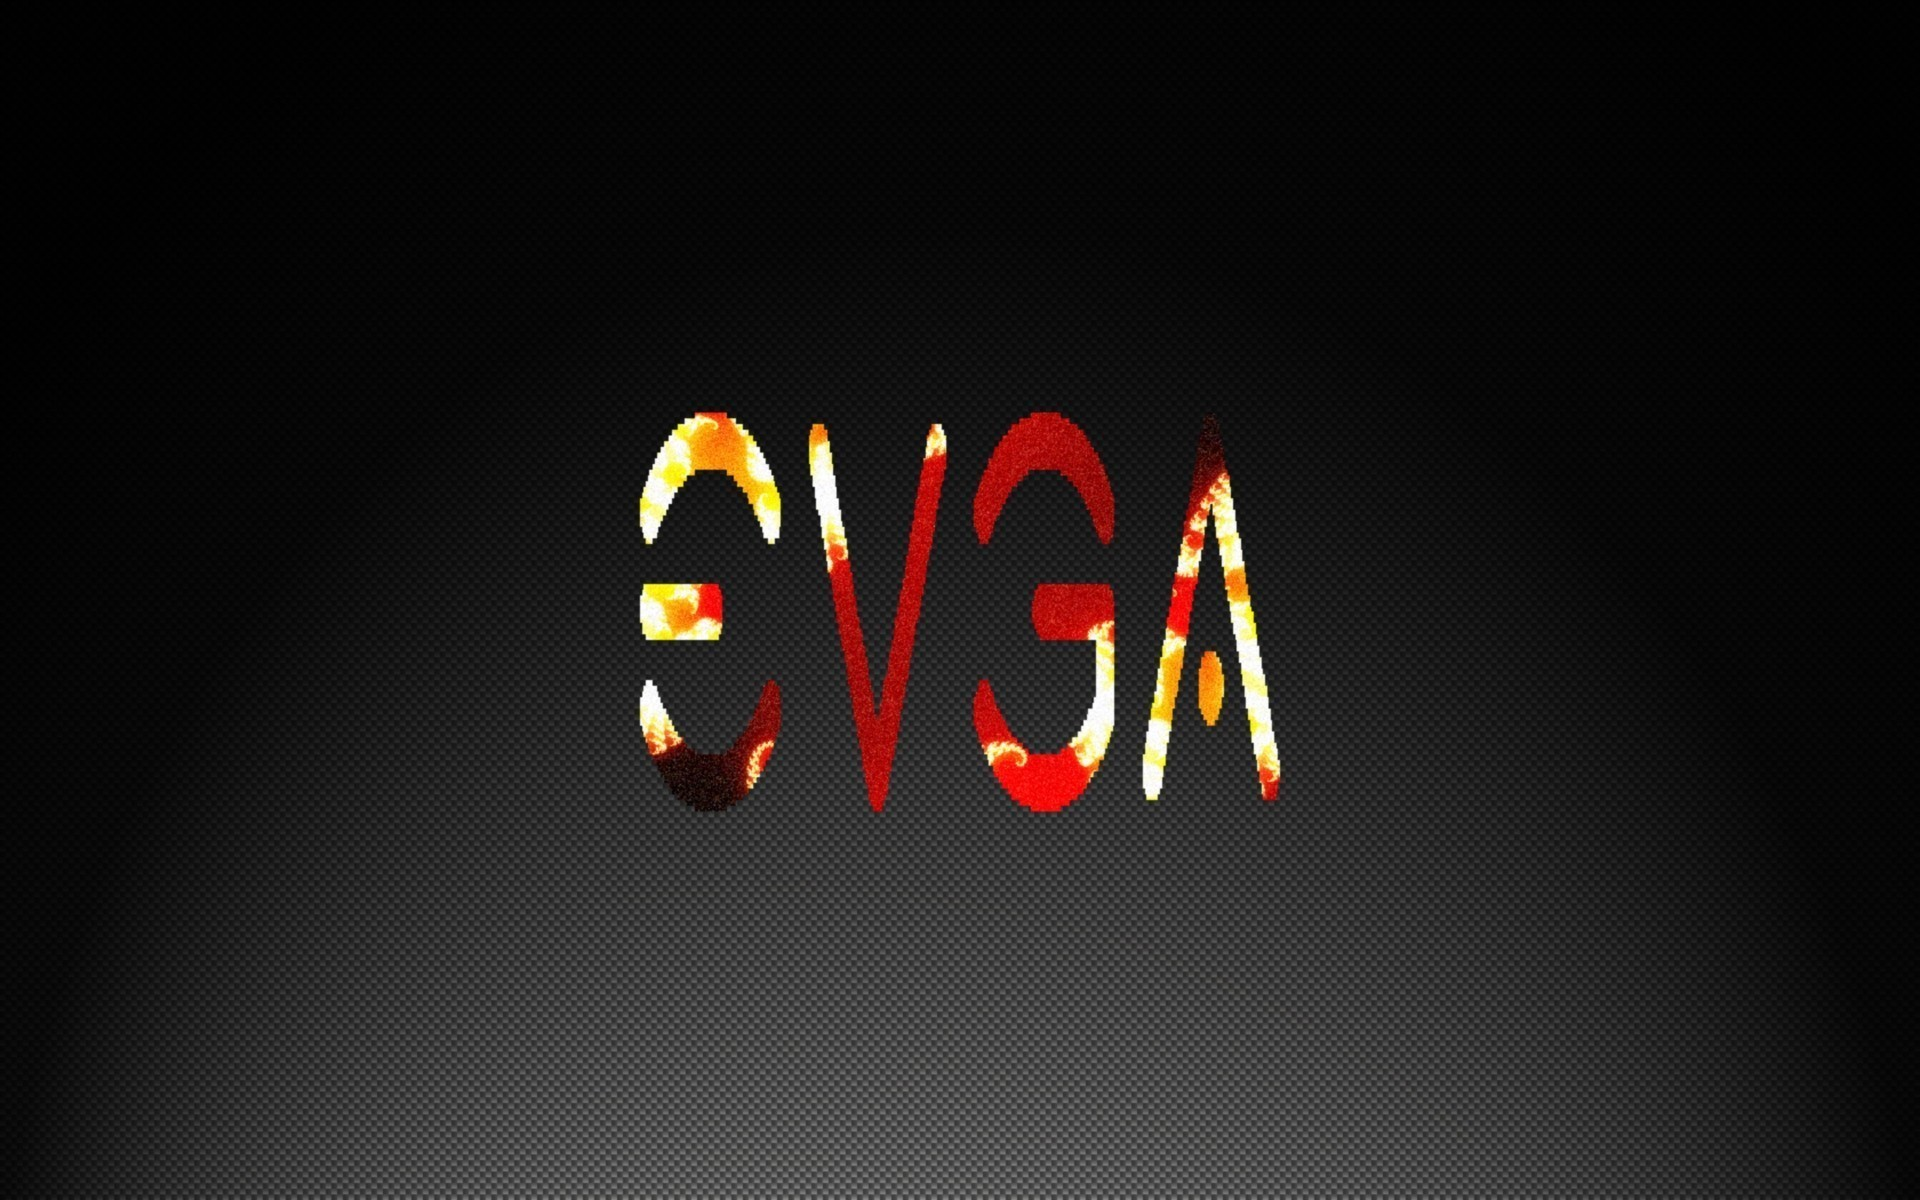 1920x1200 Evga black fire flames wallpaper